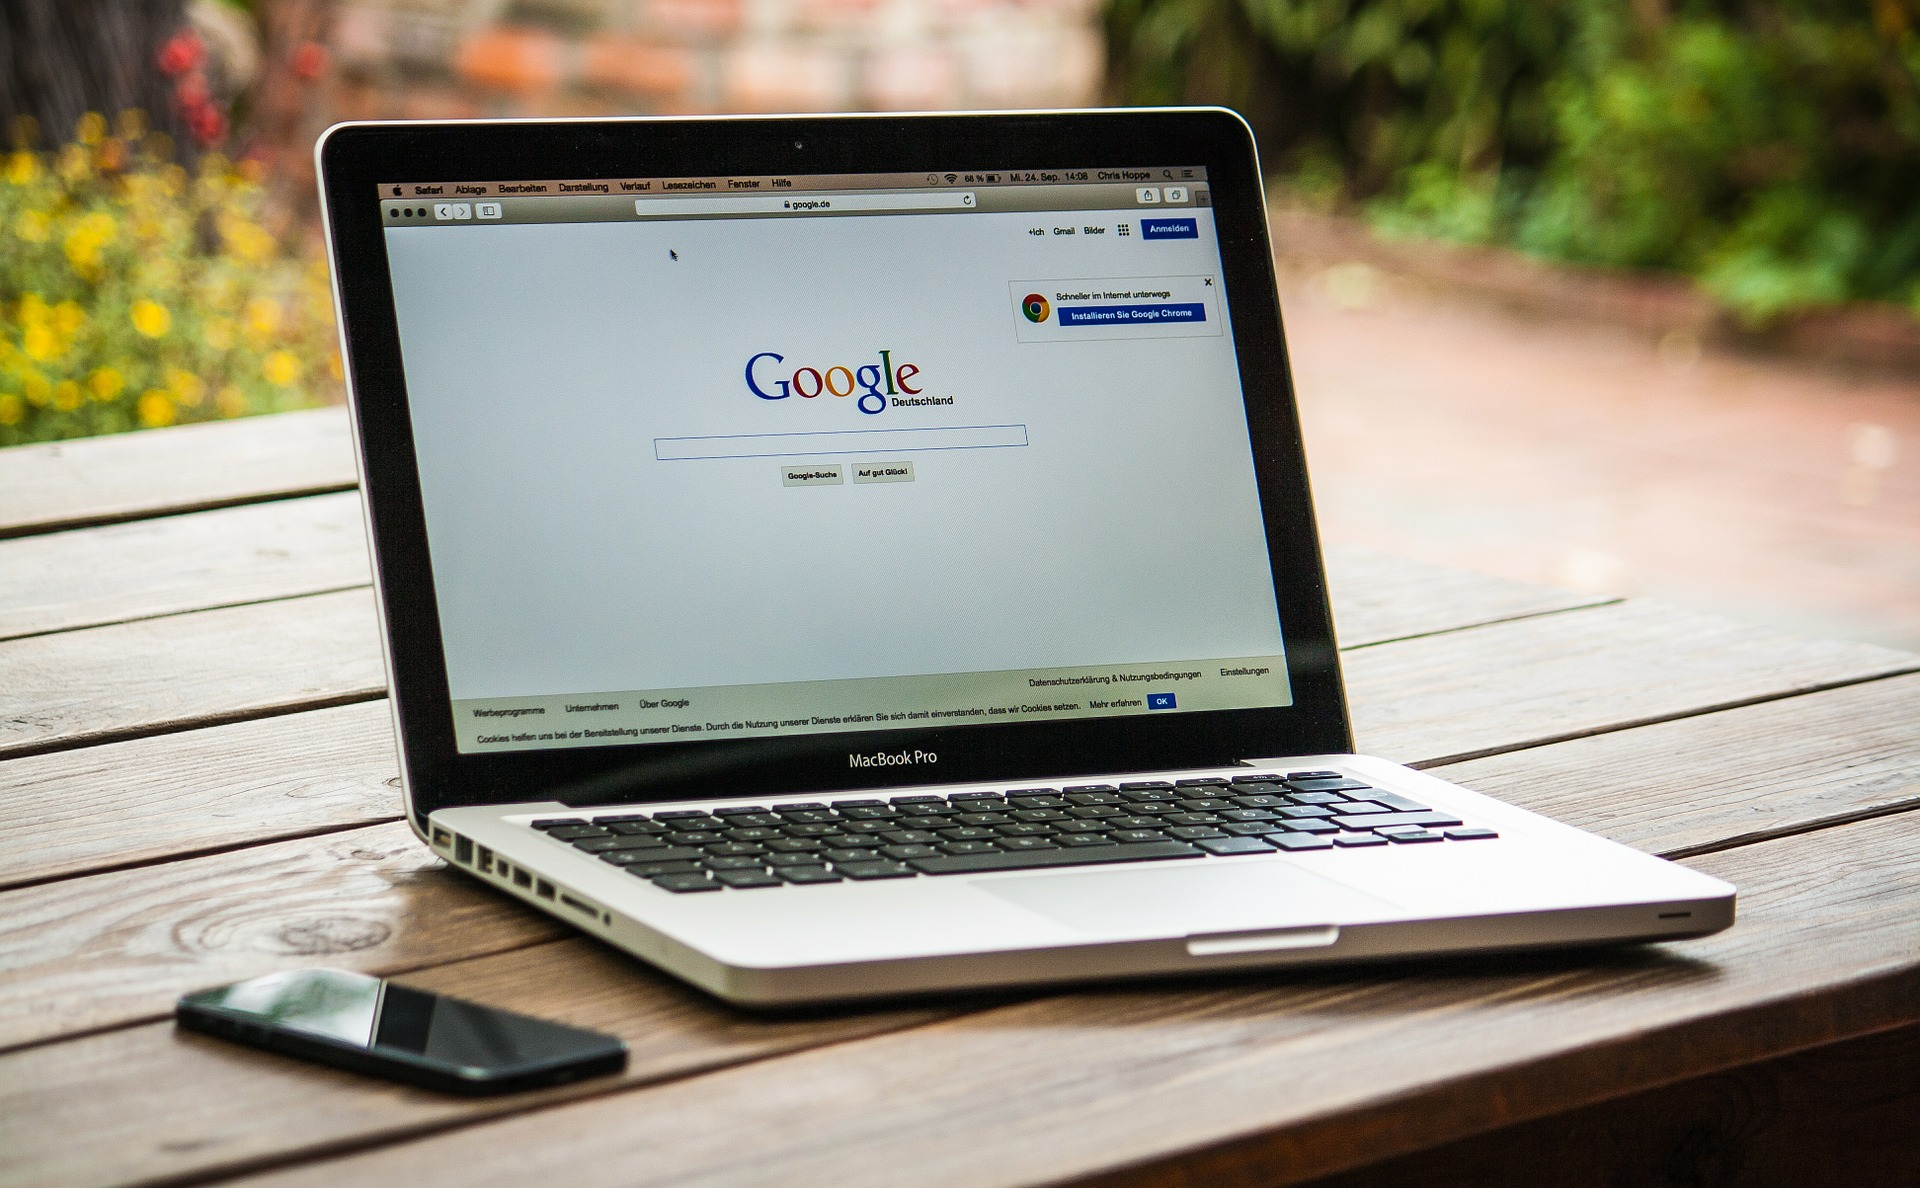 an image of apple mac book with google on it screen